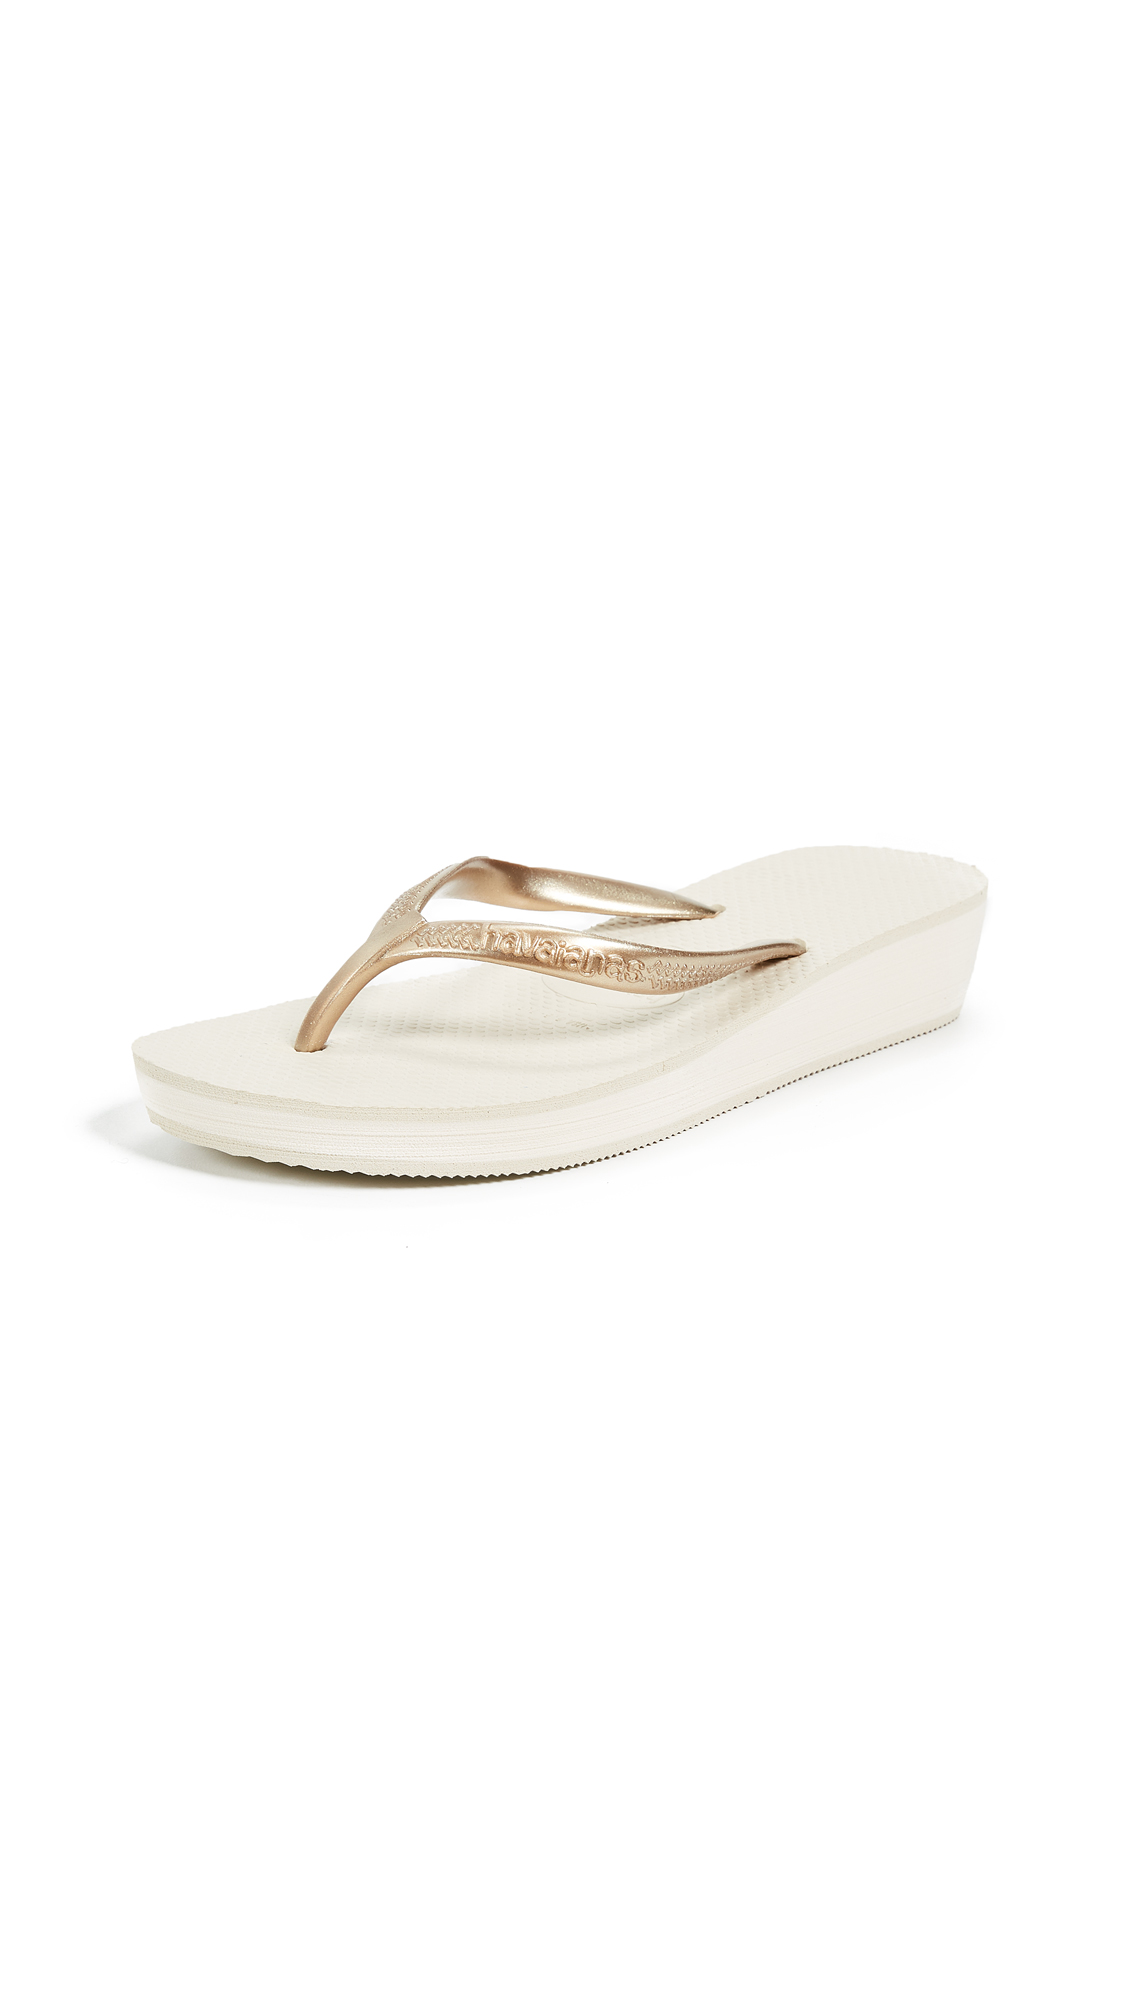 Havaianas High Light Wedge Flip Flop - Beige